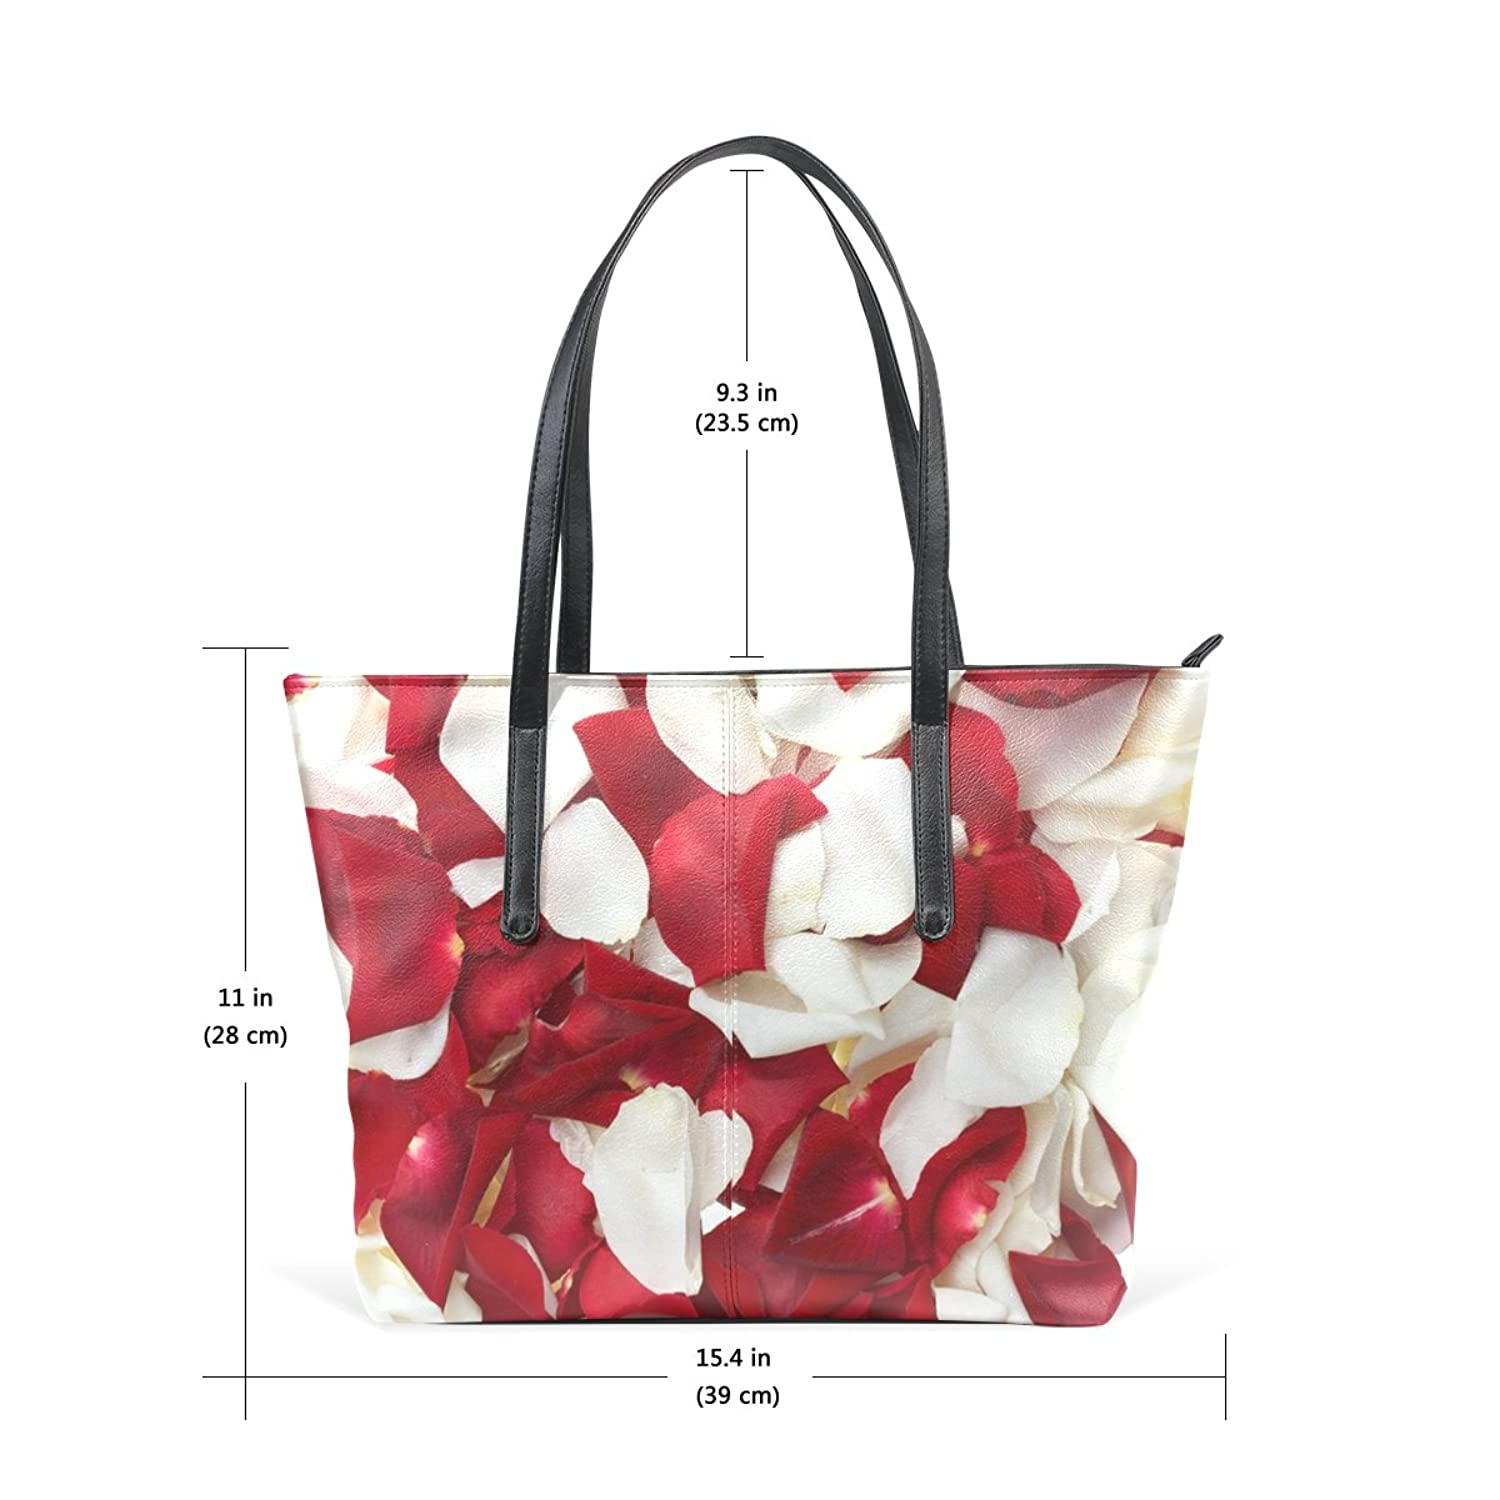 WOOR Valentine's Day Red And White Rose Women's Soft Leather Zipper Closure Large Handbags Tote Shoulder Bags